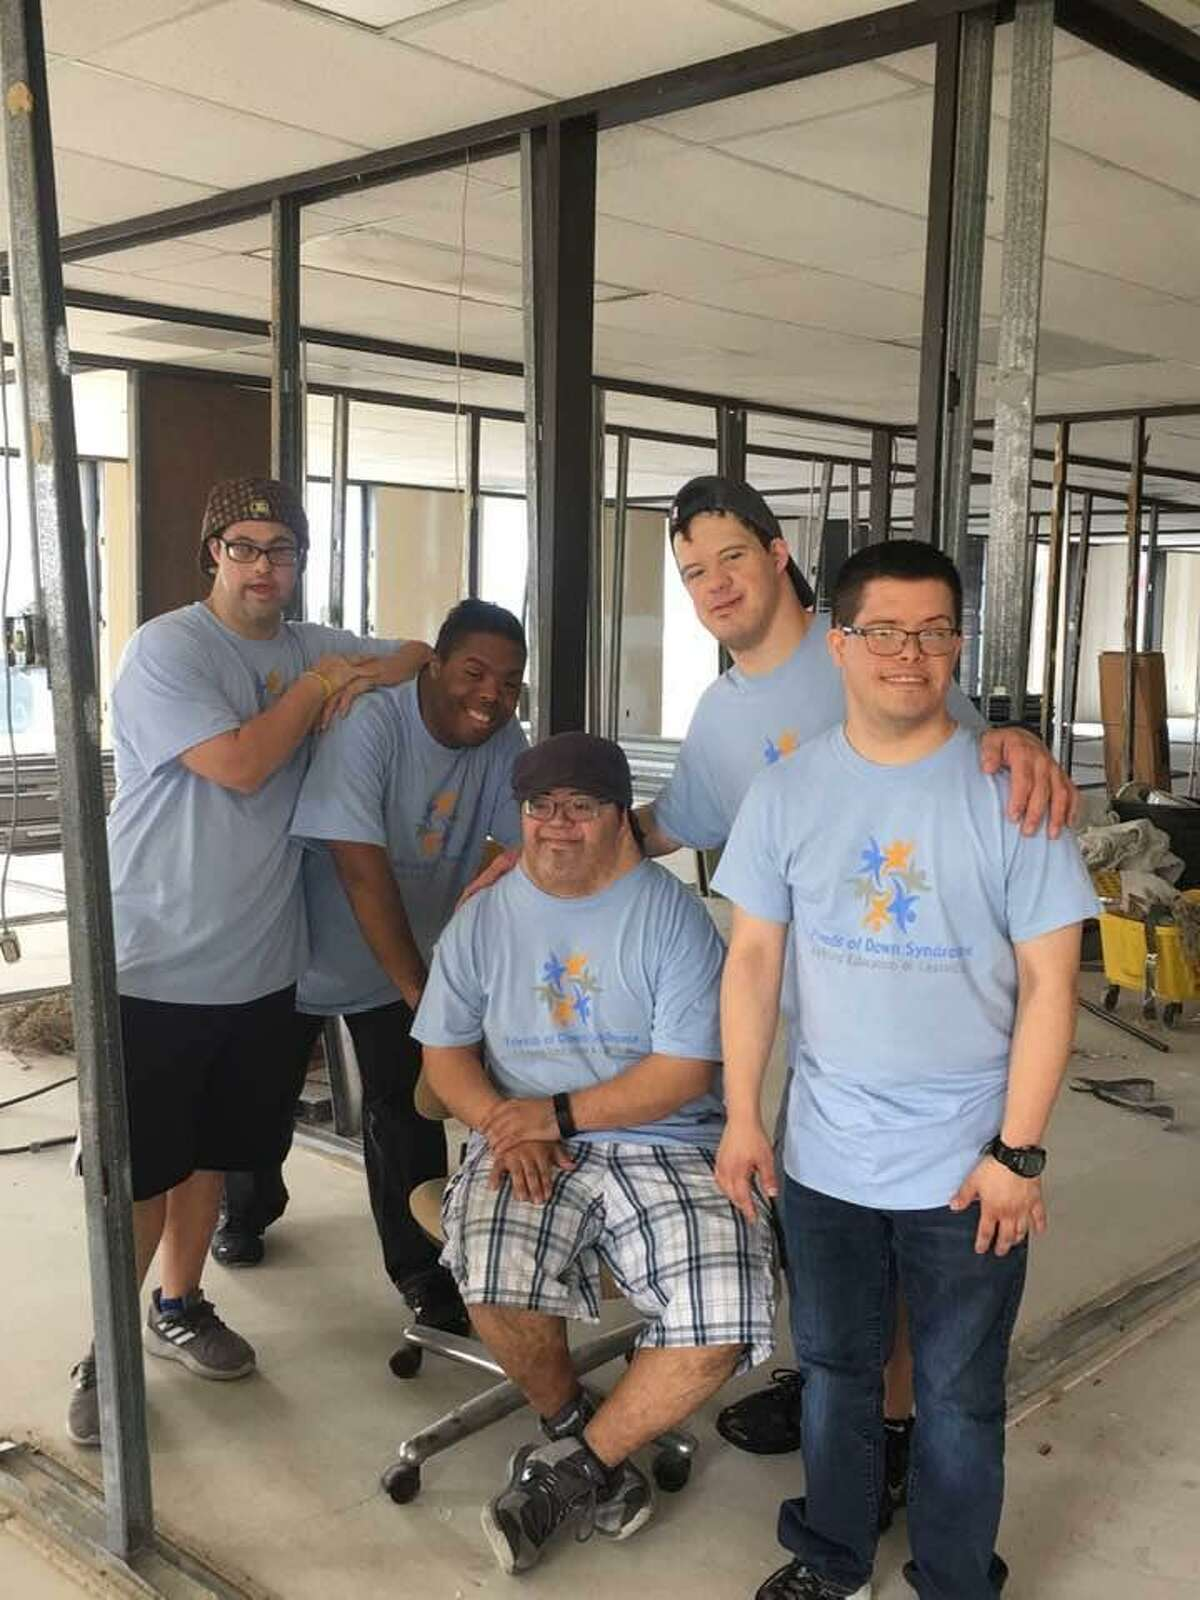 Friends of Down Syndrome is moving its Down Syndrome Academy (a school for teens and adults with Down syndrome) and offices to 11947 North Freeway, Houston 77060, last week. Students will officially report to the new building for classes on April 29.